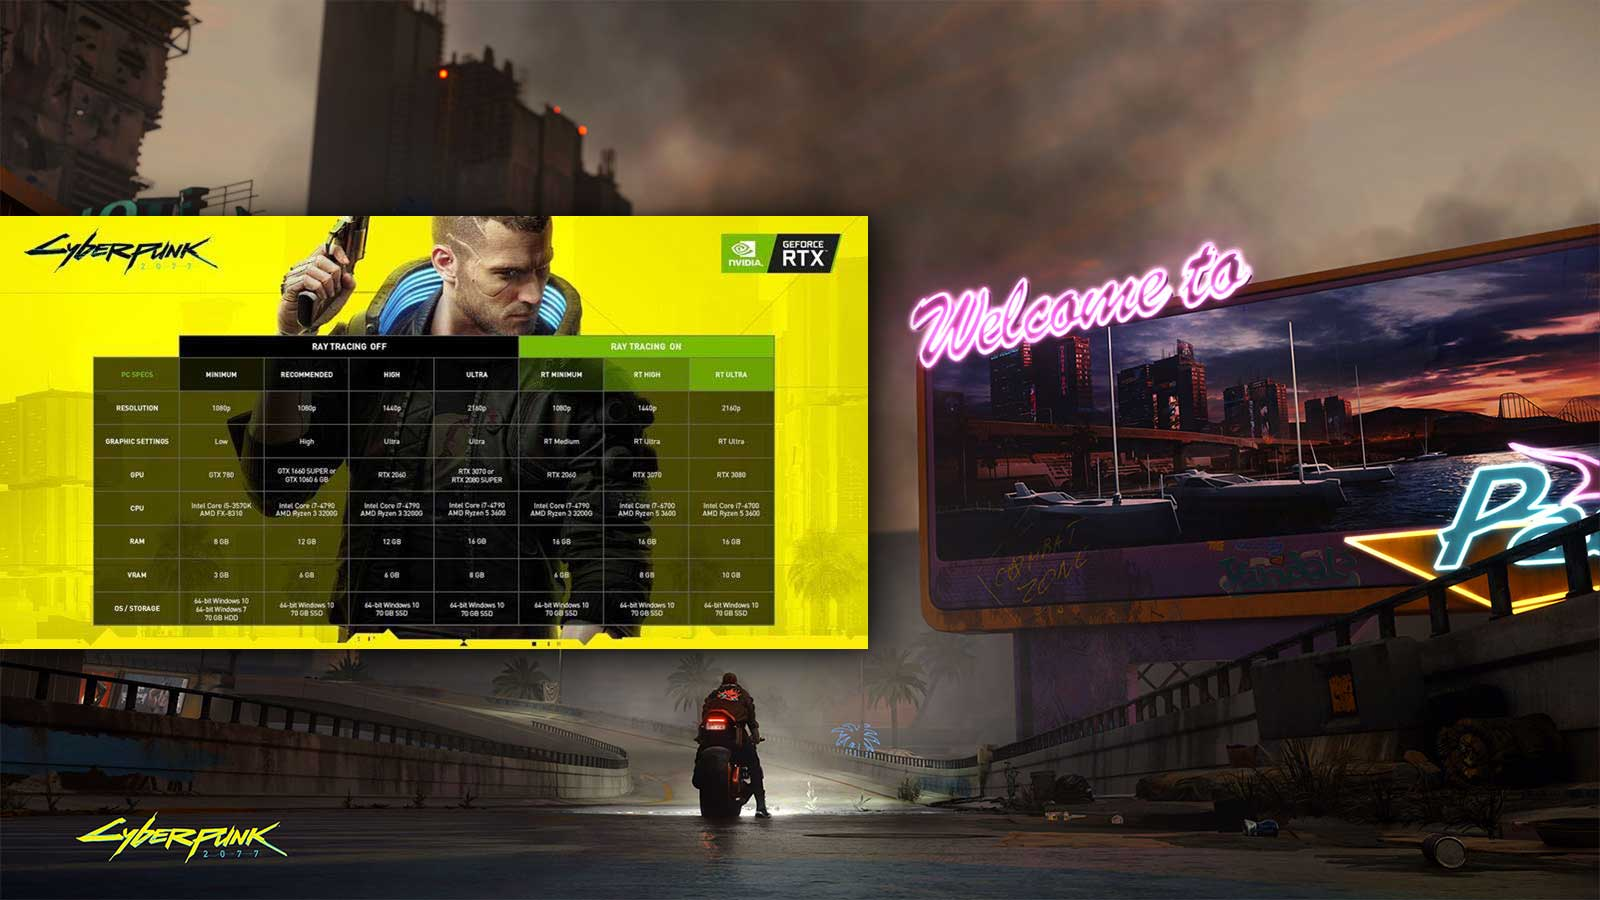 Cyberpunk2077 Welcome to Paradise RGB en babt